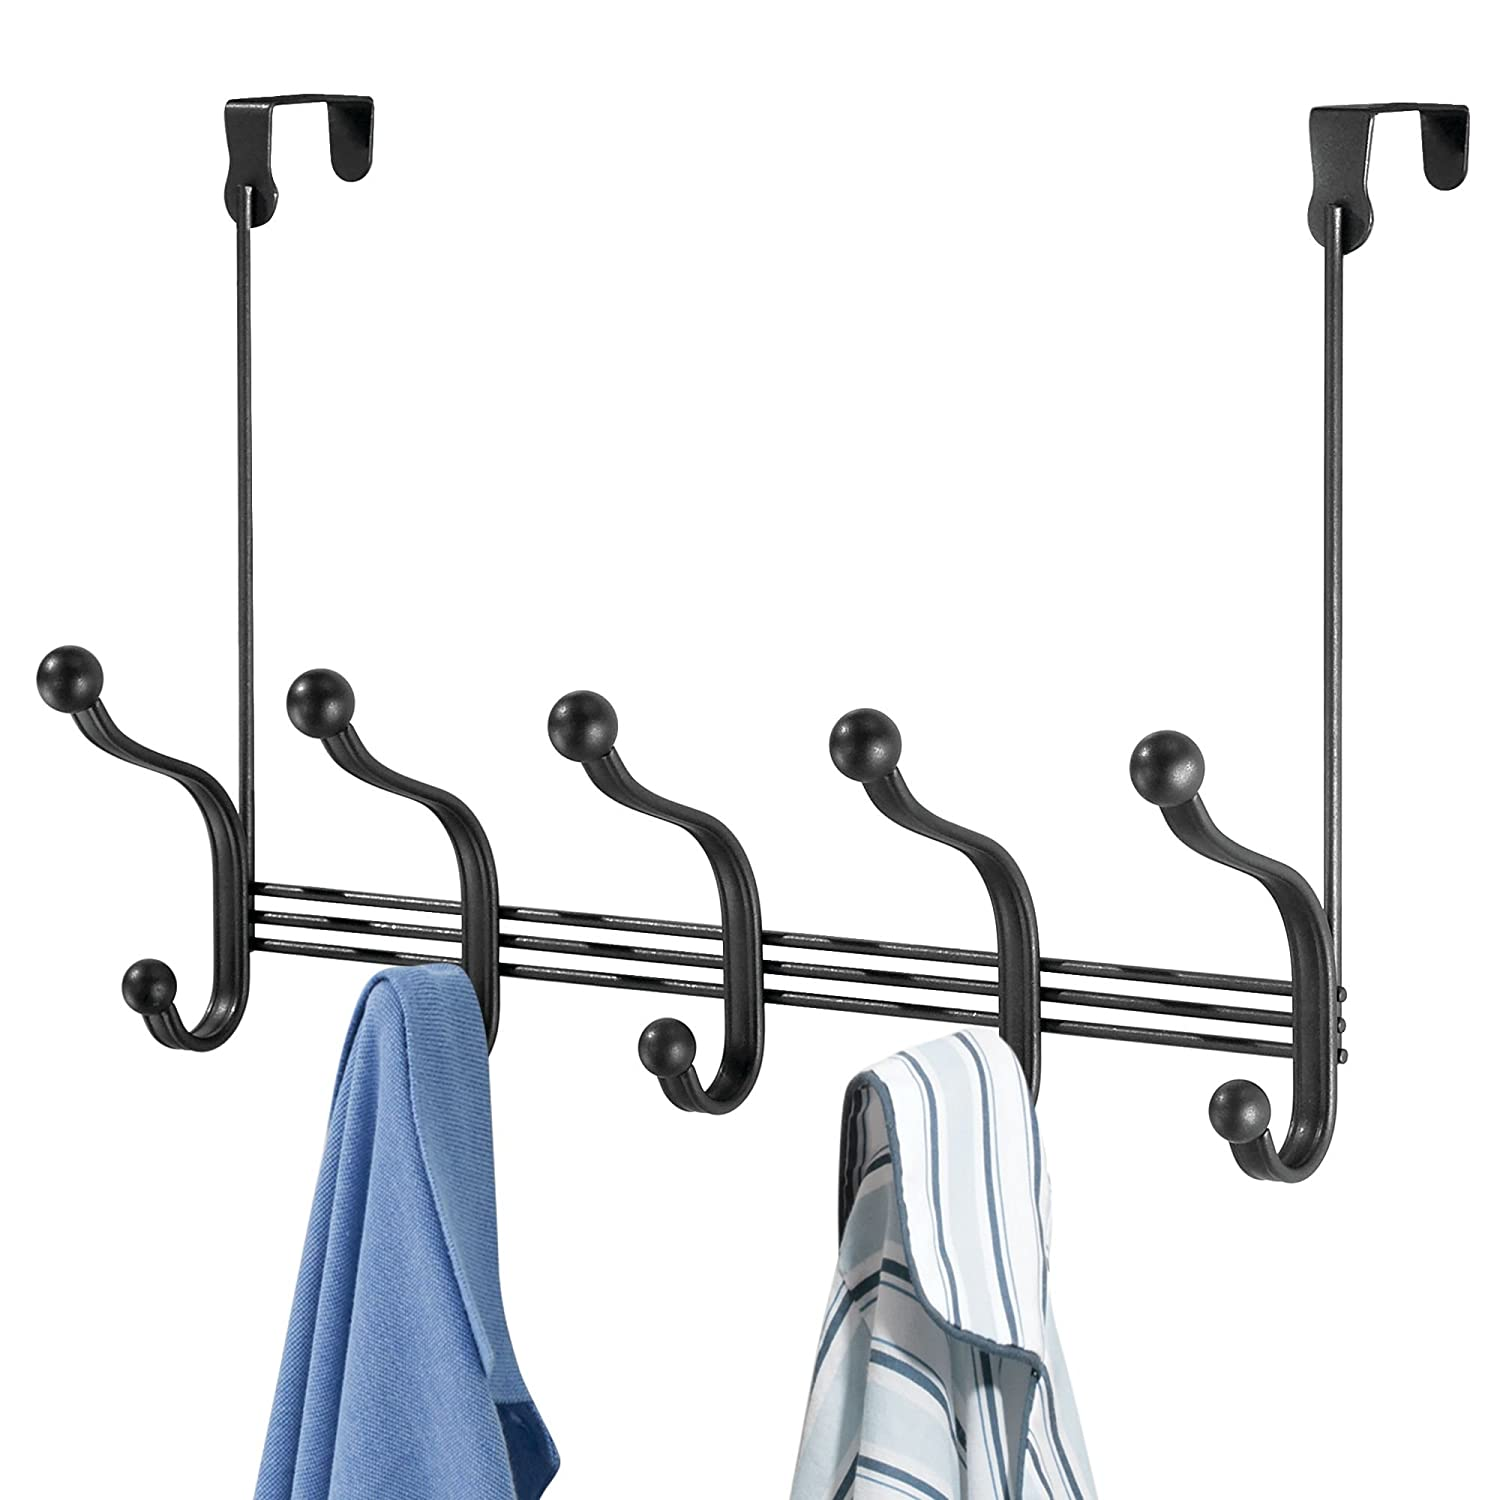 mDesign Decorative Over Door 10 Hook Metal Storage Organizer Rack for Coats, Hoodies, Hats, Scarves, Purses, Leashes, Bath Towels, Robes, Men and Womens Clothing - Brushed Nickel MetroDecor 01811MDCO